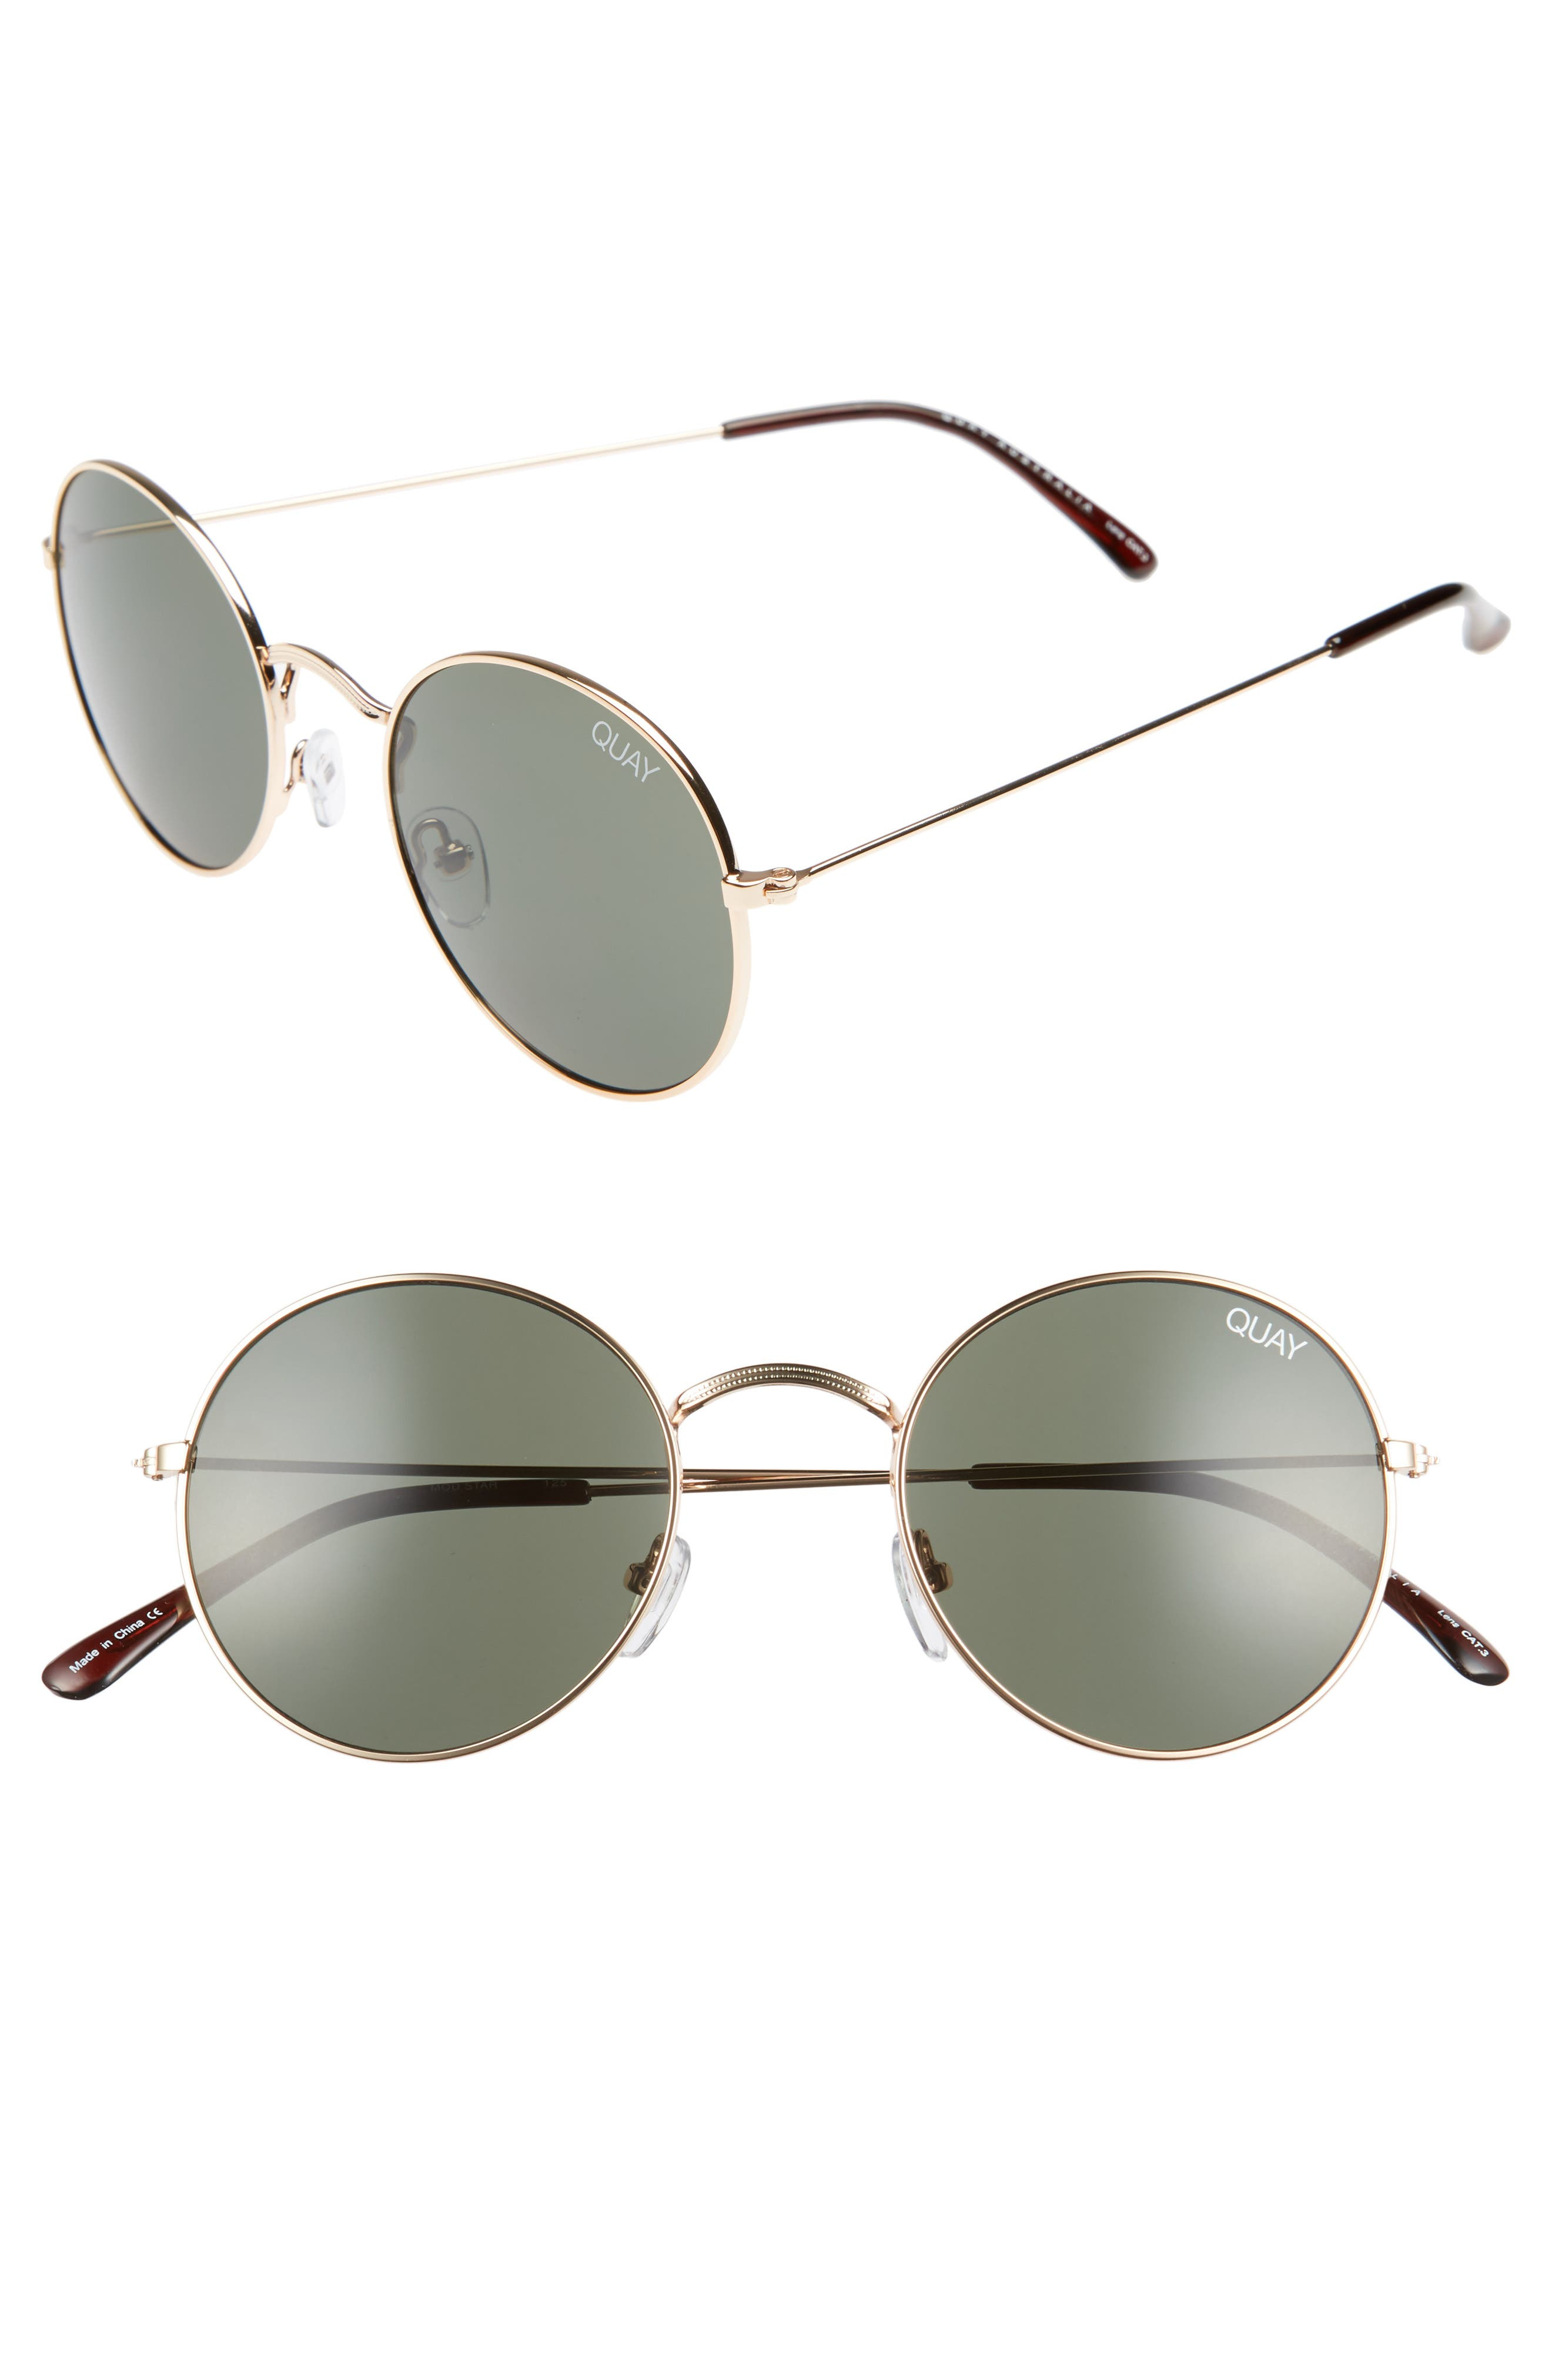 50mm Mod Star Round Sunglasses,                         Main,                         color, Gold/ Green